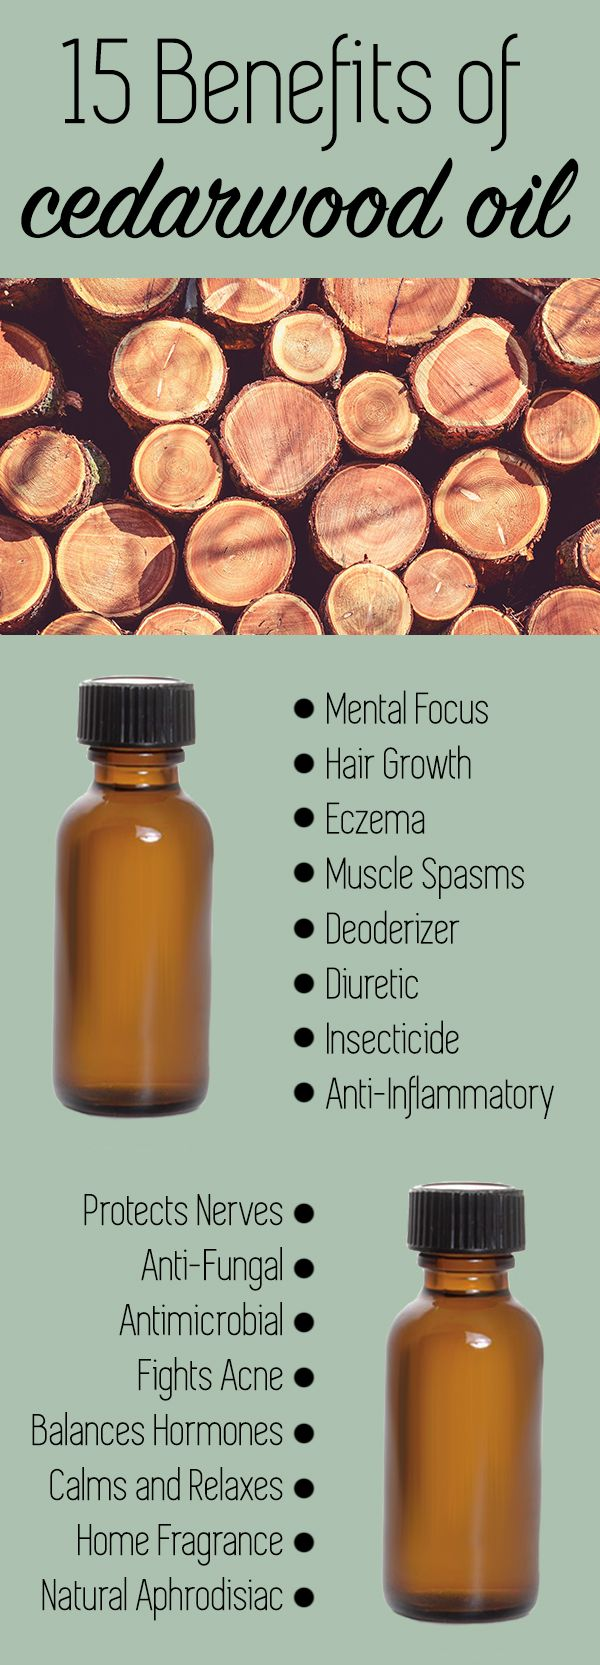 15 Benefits of Cedarwood Oil - This multi purpose oil improves mental focus, encourages hair growth, treats eczema, reduces muscle spasms, works as a natural deodorizer and insecticide, and so much more!  Essential oils are non-toxic and chemical free ways to heal ailments and treat a variety of symptoms of stress and skin conditions.  Cedarwood Oil has a relaxing and woodsy scent that naturally encourages relaxation and calming.  #essentialoils #natural #nontoxic #chemicalfreehome…